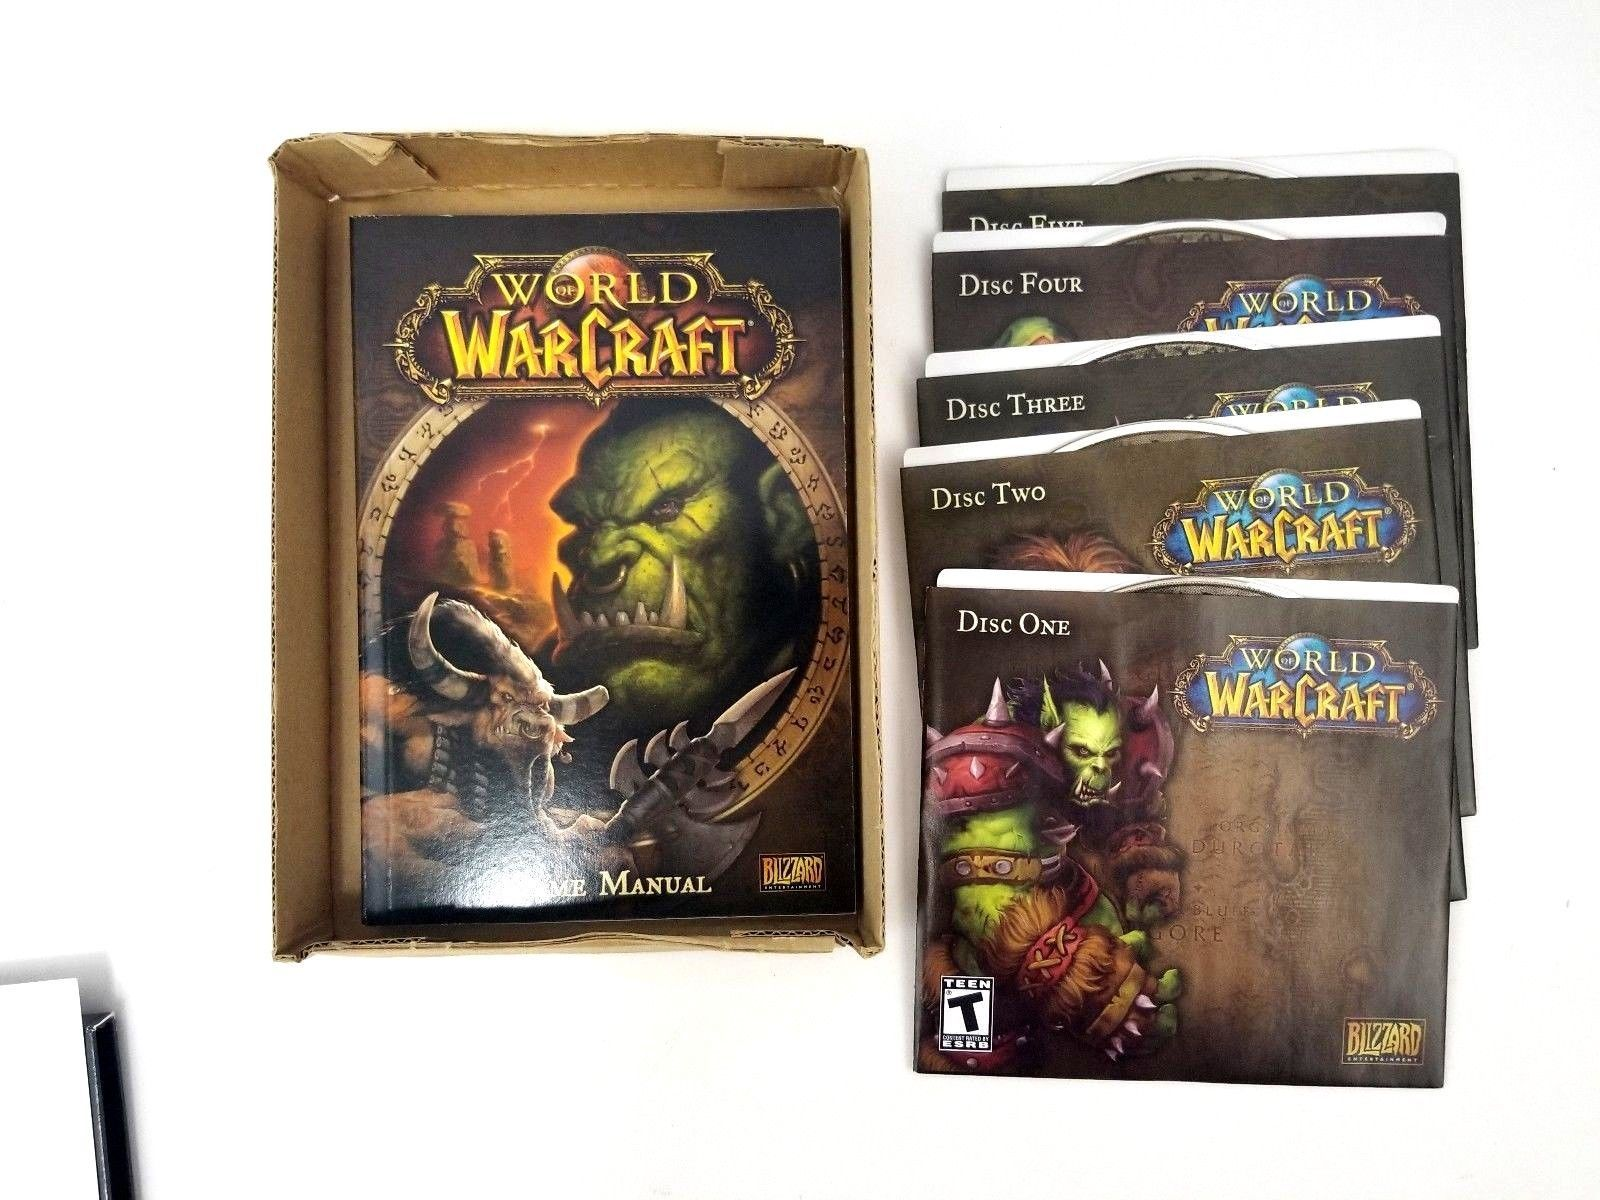 World of Warcraft PC Game for Windows 2000 XP & Mac Blizzard Entertainment New image 2